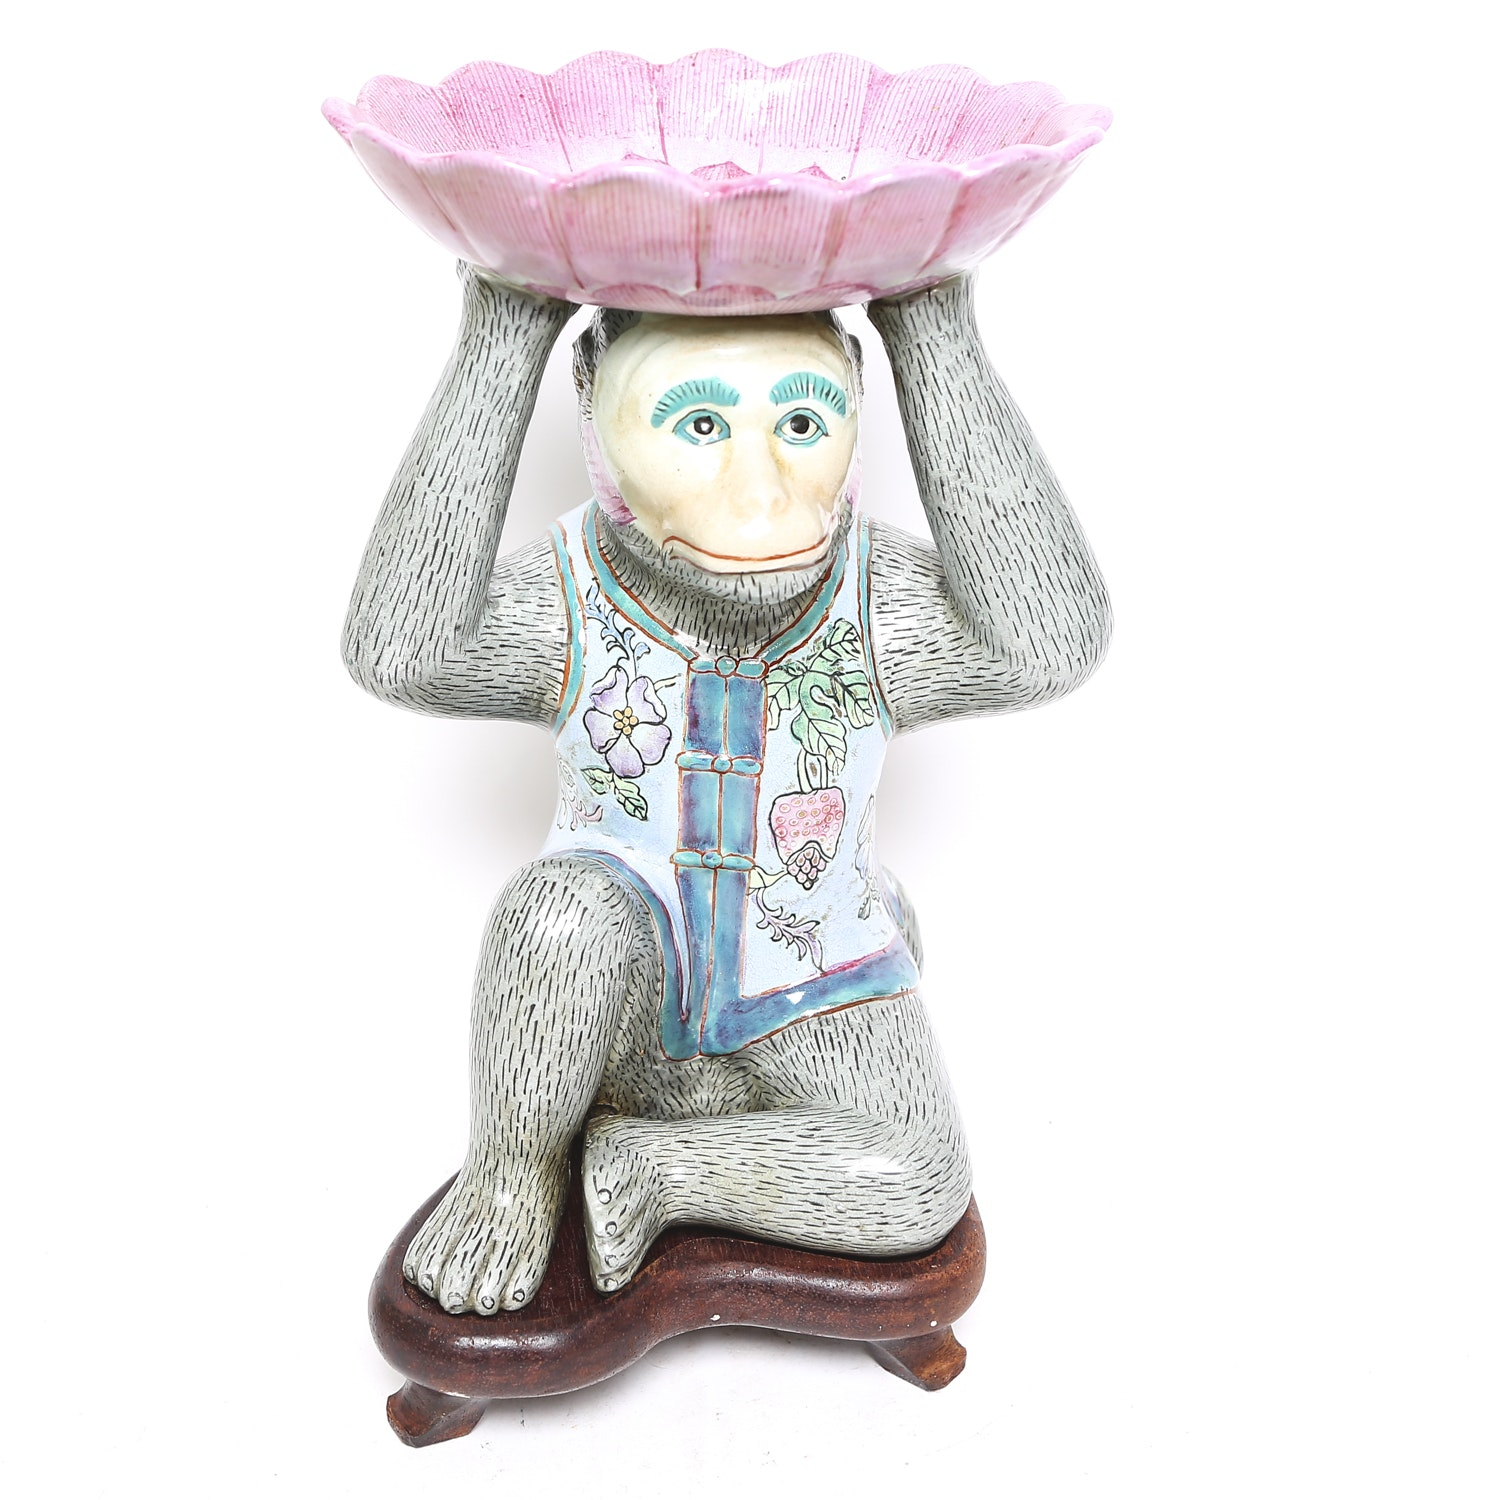 Chinese Ceramic Monkey with Wooden Stand